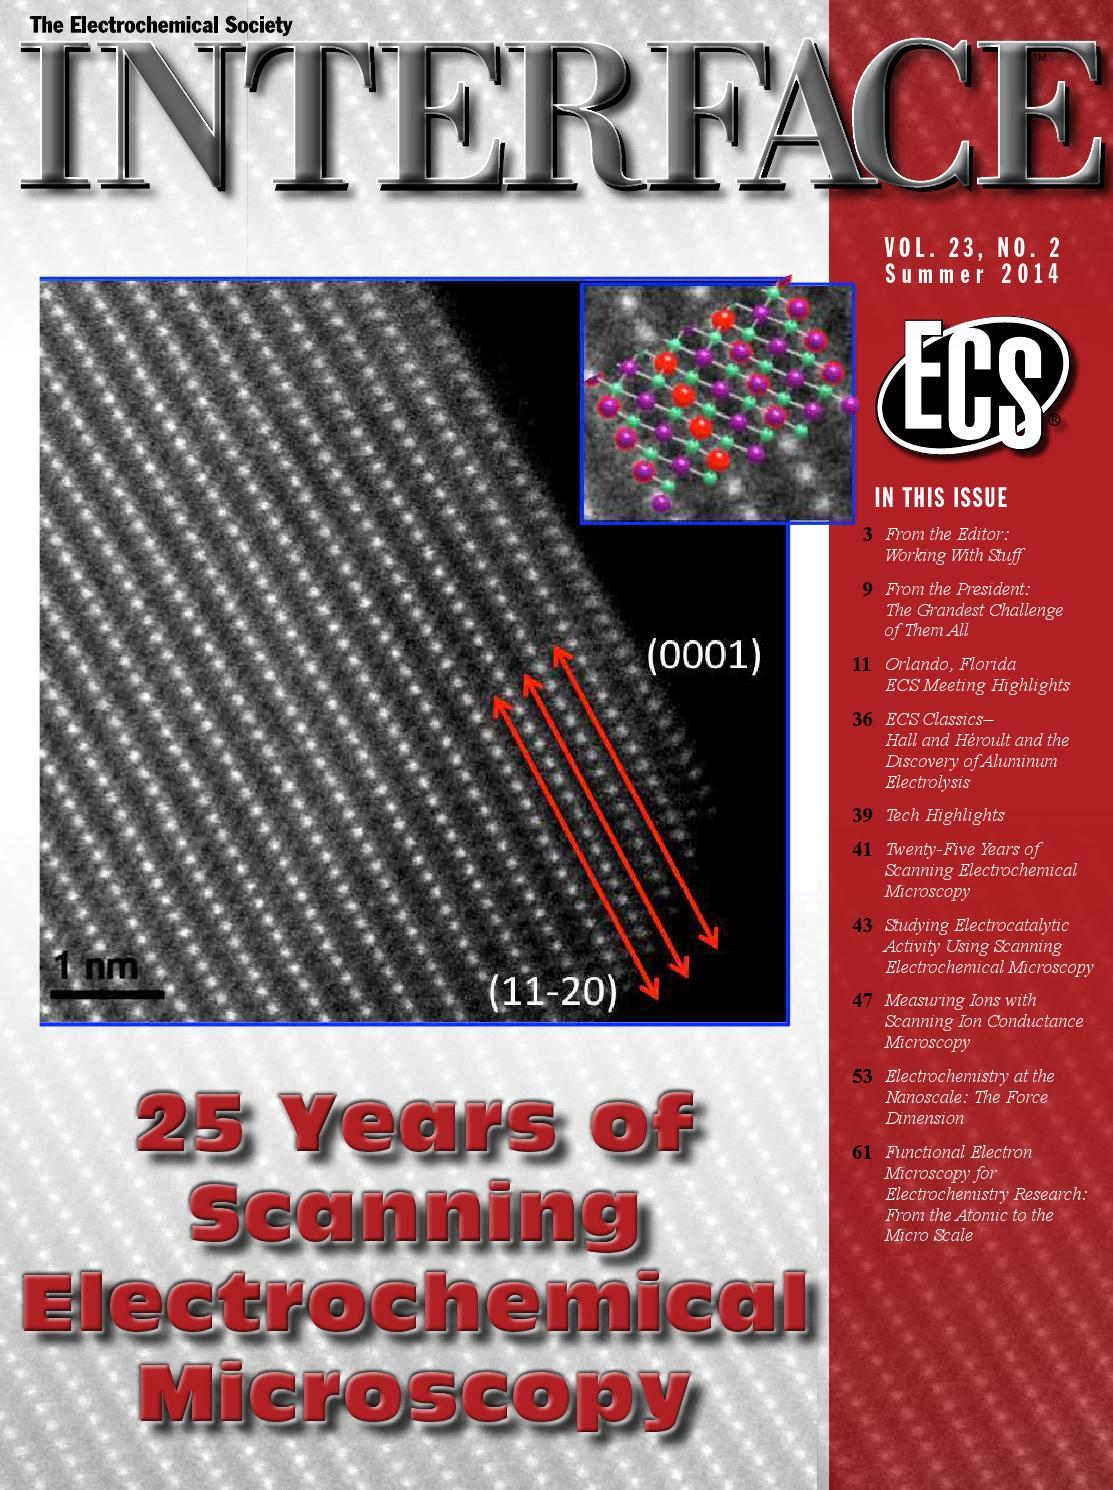 Interface Vol 23 No 2 Summer 2014 By The Electrochemical Society Practical Design Of Mixer Converter Circuits February 1941 Qst Rf Issuu